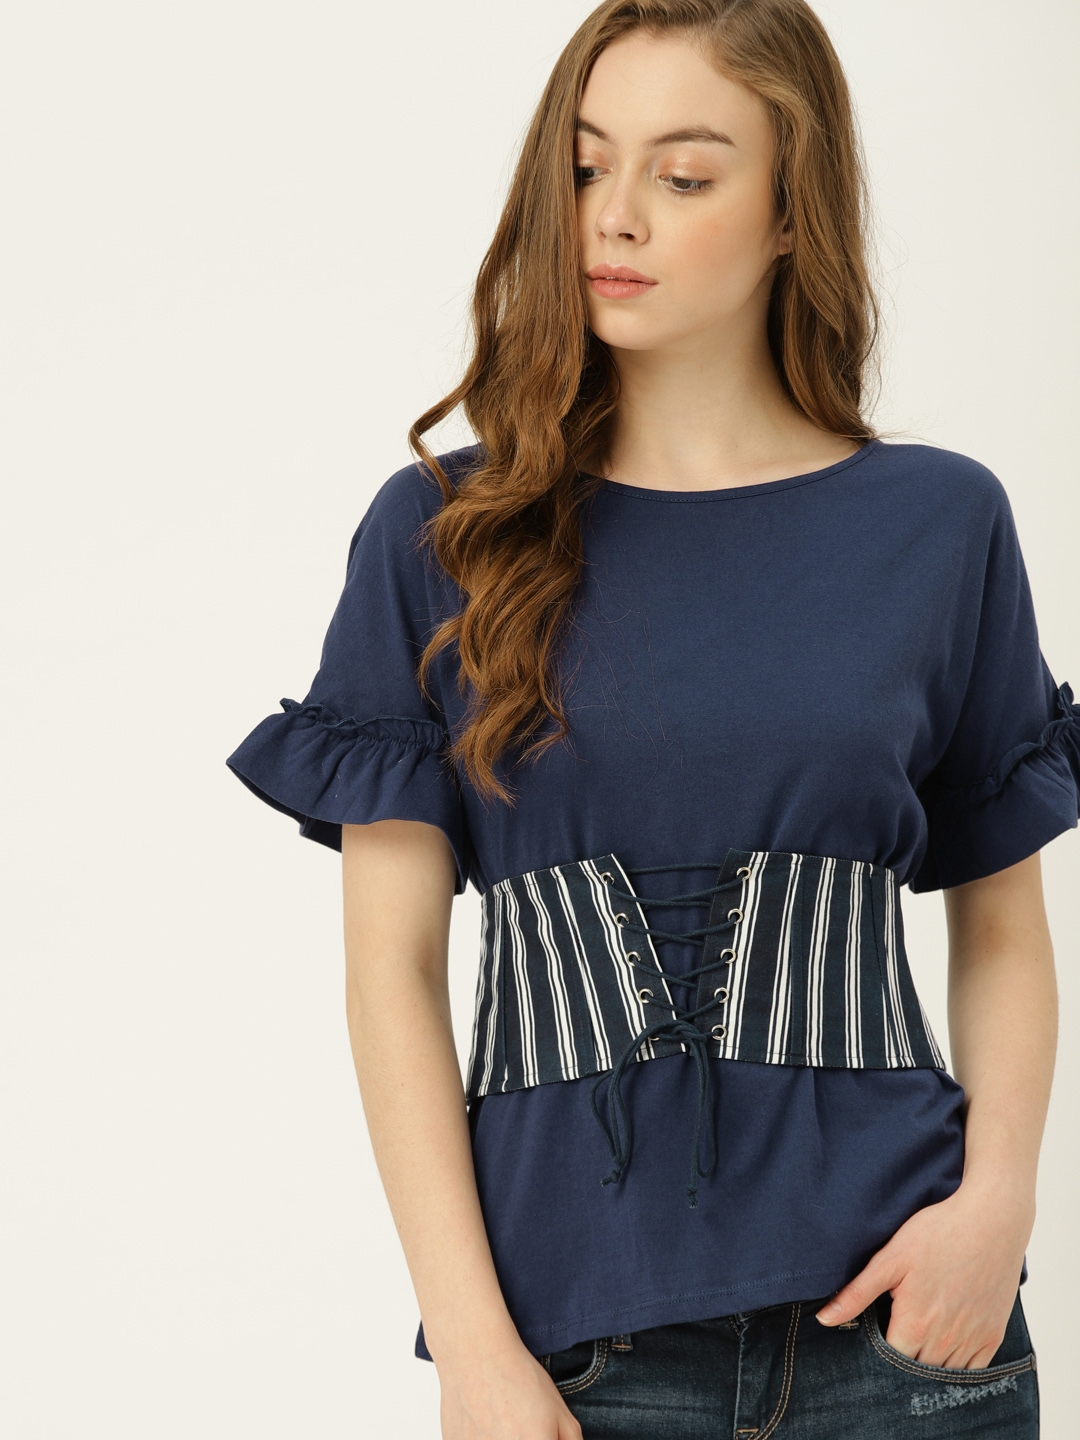 54a966a5f5b3b5 United Colors of Benetton Women Navy Solid Top with Striped Corset Belt